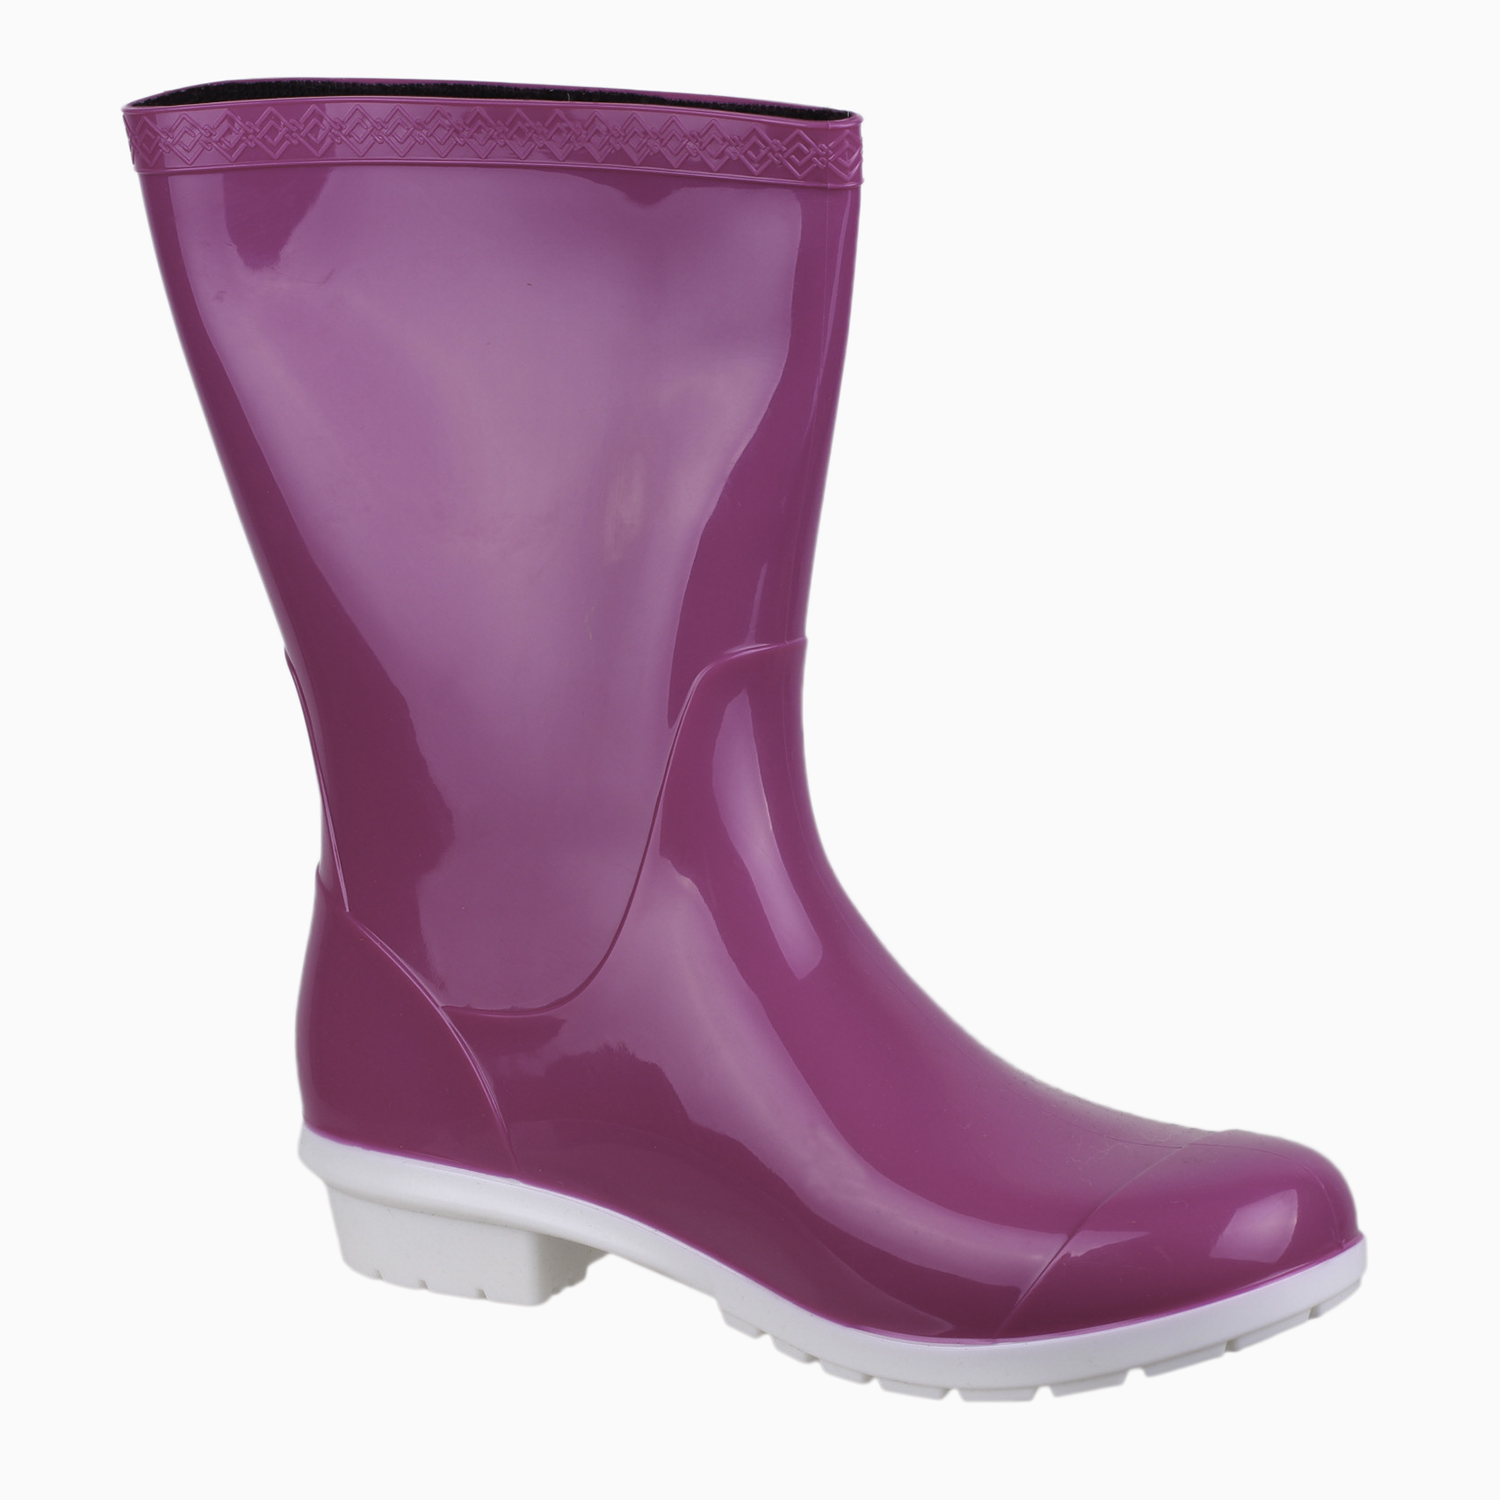 3a0a964a6fd Details about UGG Women's Sienna Rain 1014452 Boot Shoes Neon Pink